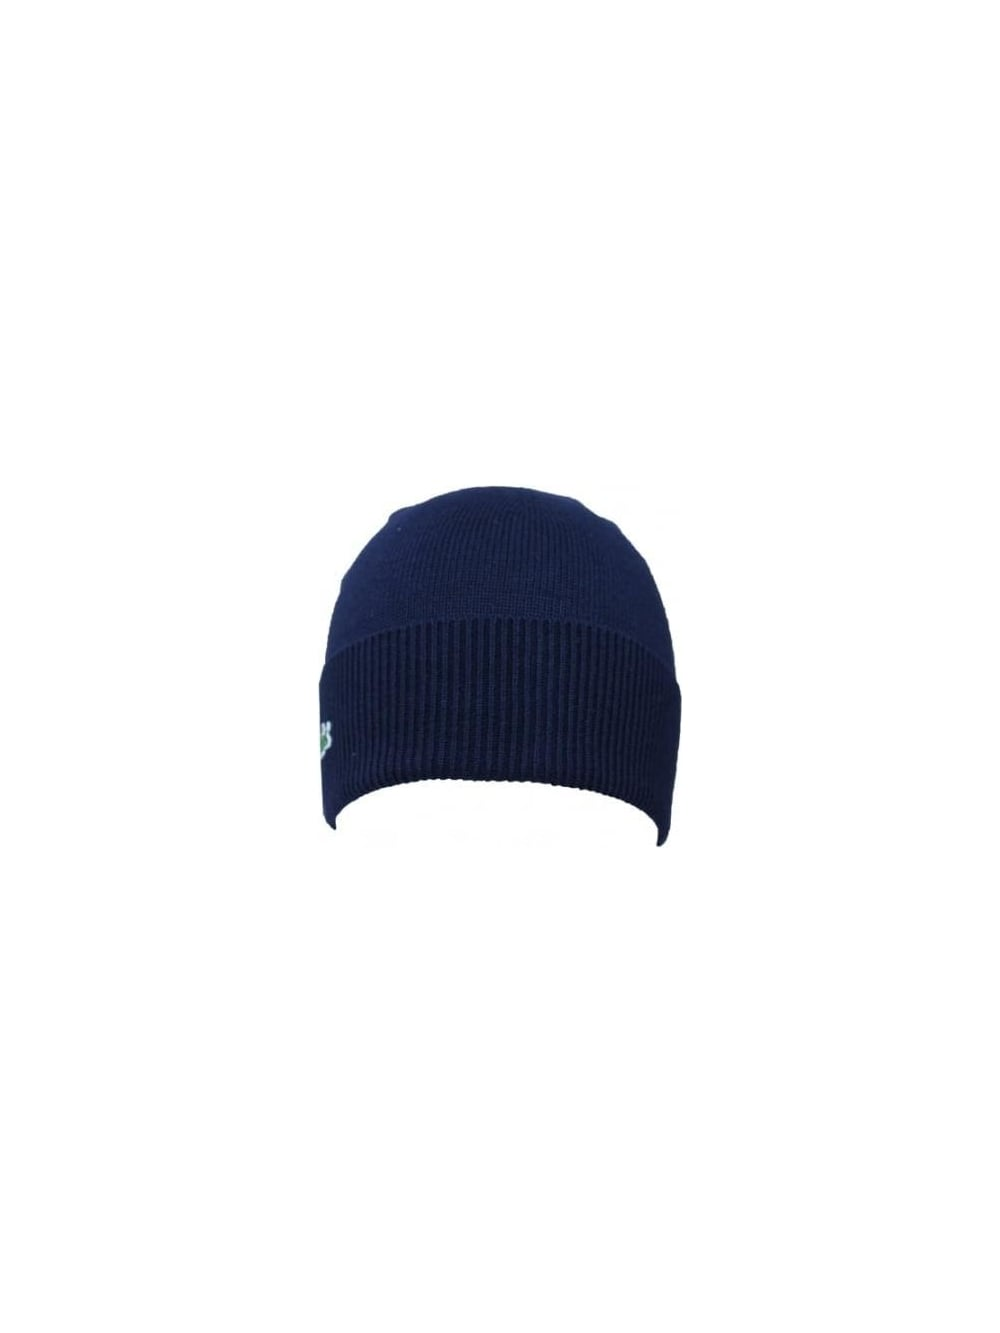 Lacoste Sport Ribbed Beanie in Navy - Northern Threads 08cd9aee958d